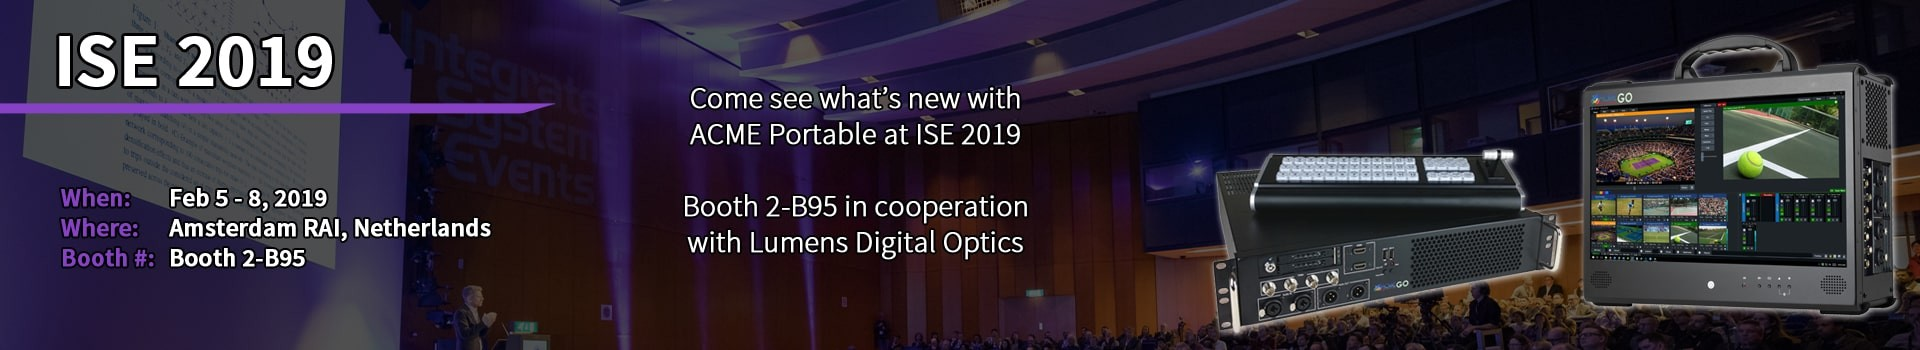 ISE 2019 Banner